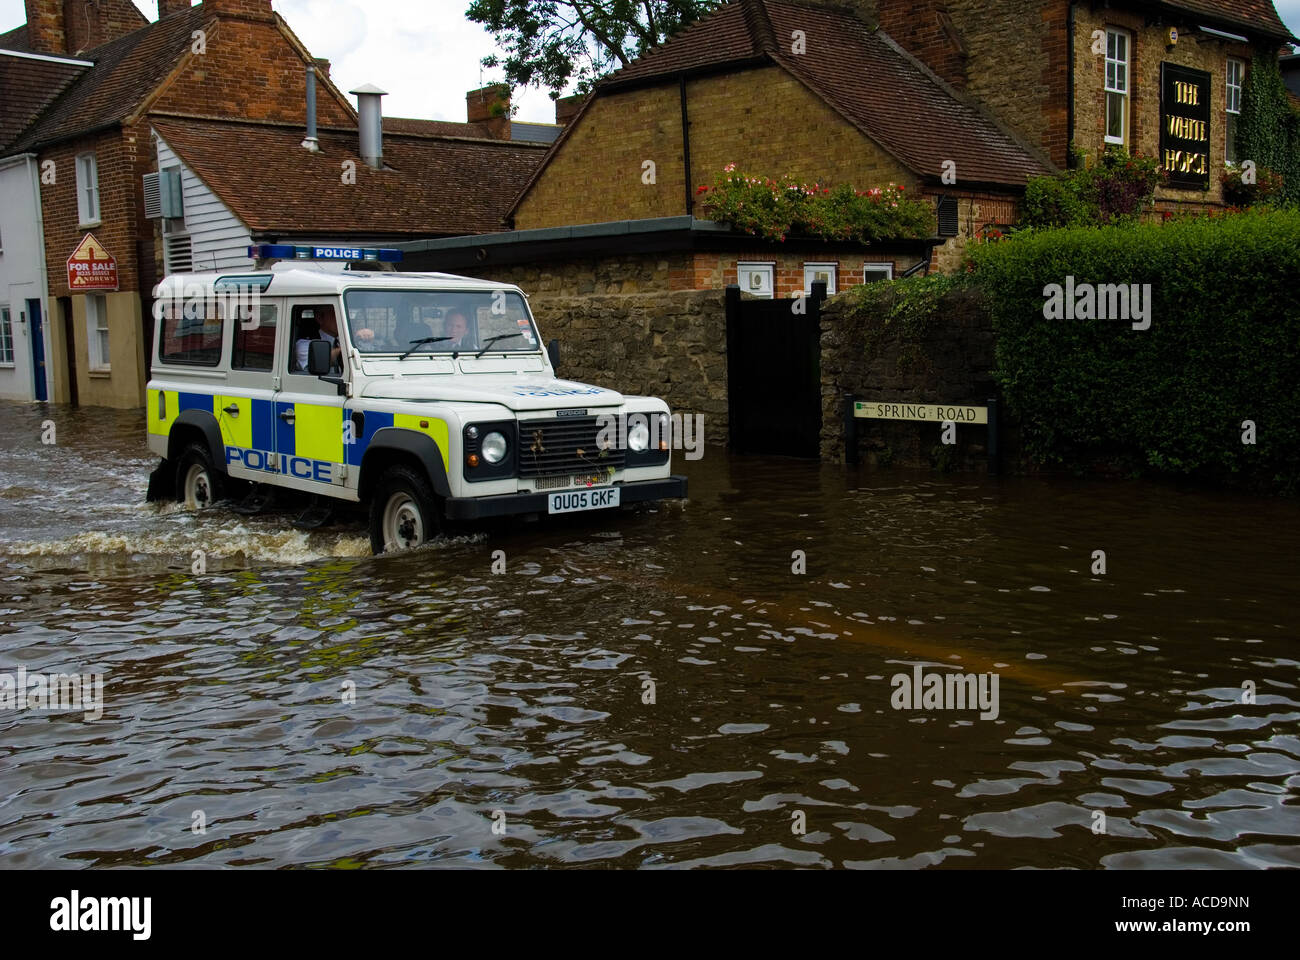 Police Land Rover Stock Photos Images Alamy Driving Light Wiring Australian Owners A Along Flooded Street Image